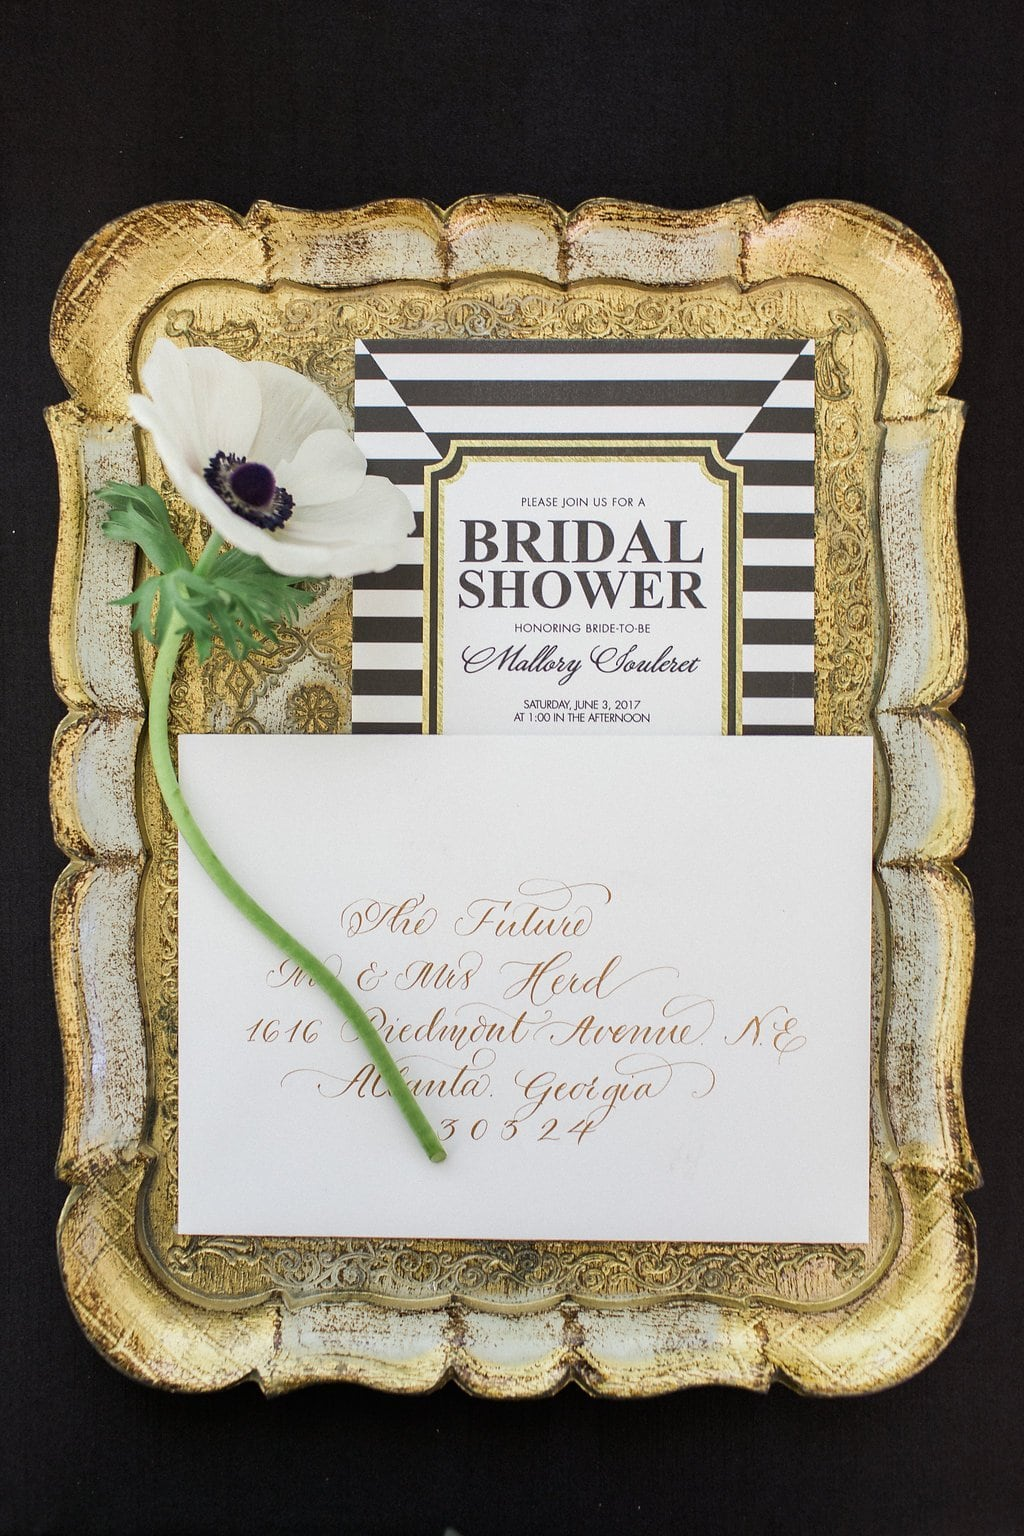 black and white bridal shower invitations on gold antique tray - Black & White Kate Spade Inspired Bridal Shower